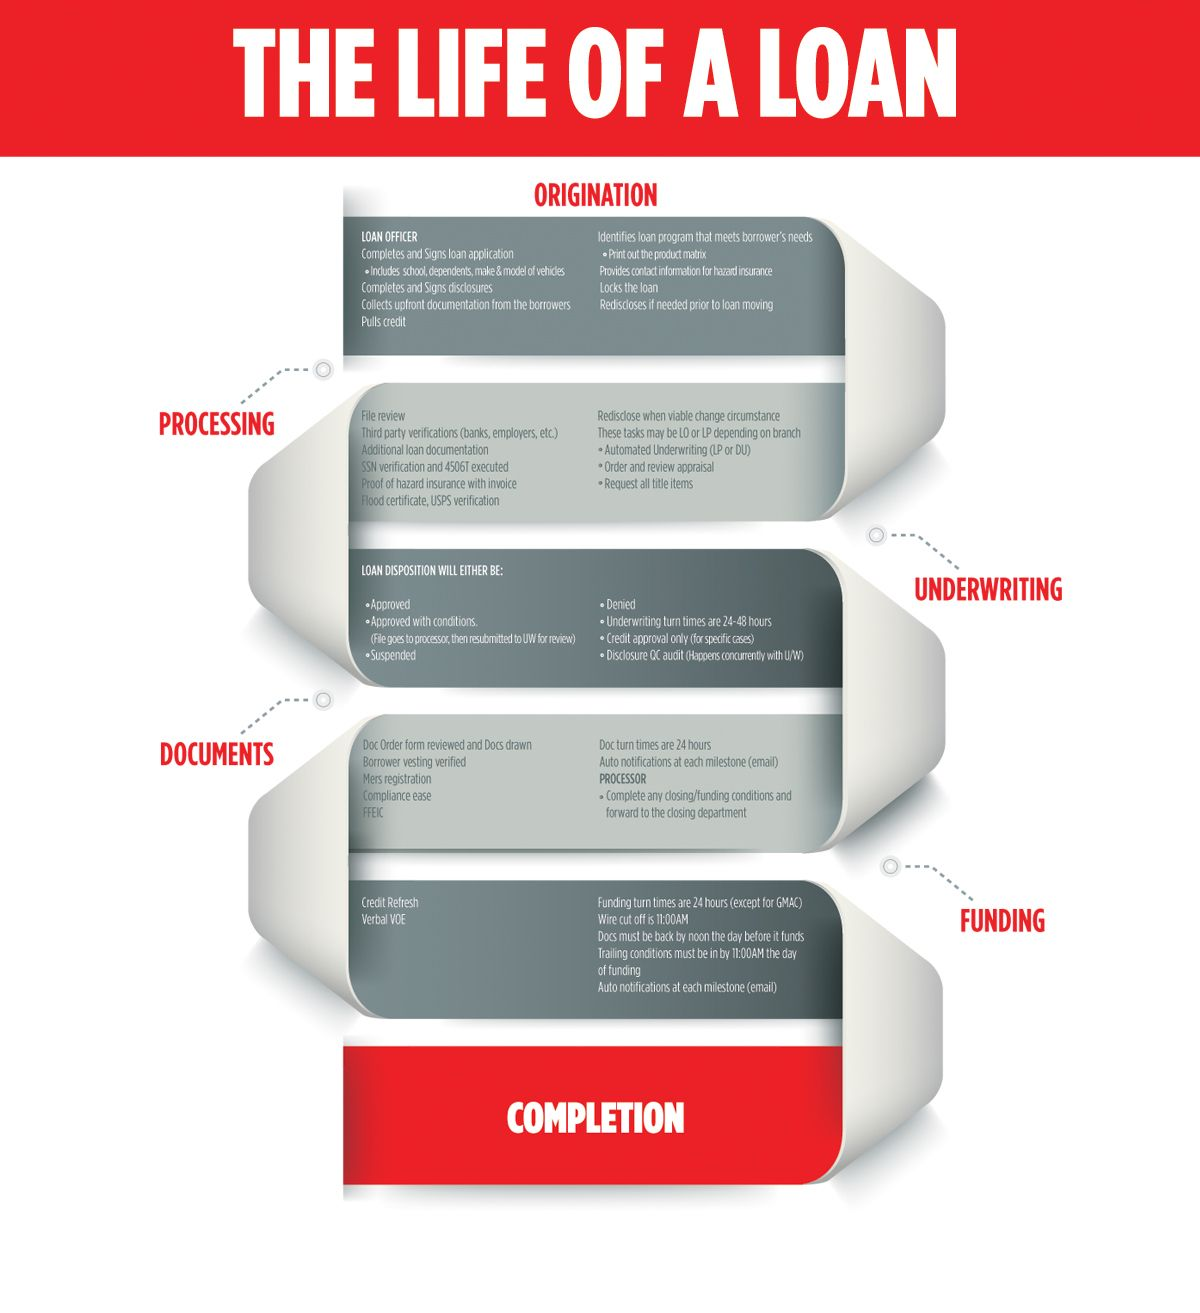 Life Of Loan Process With Images Underwriting Loan Officer Marketing Trends